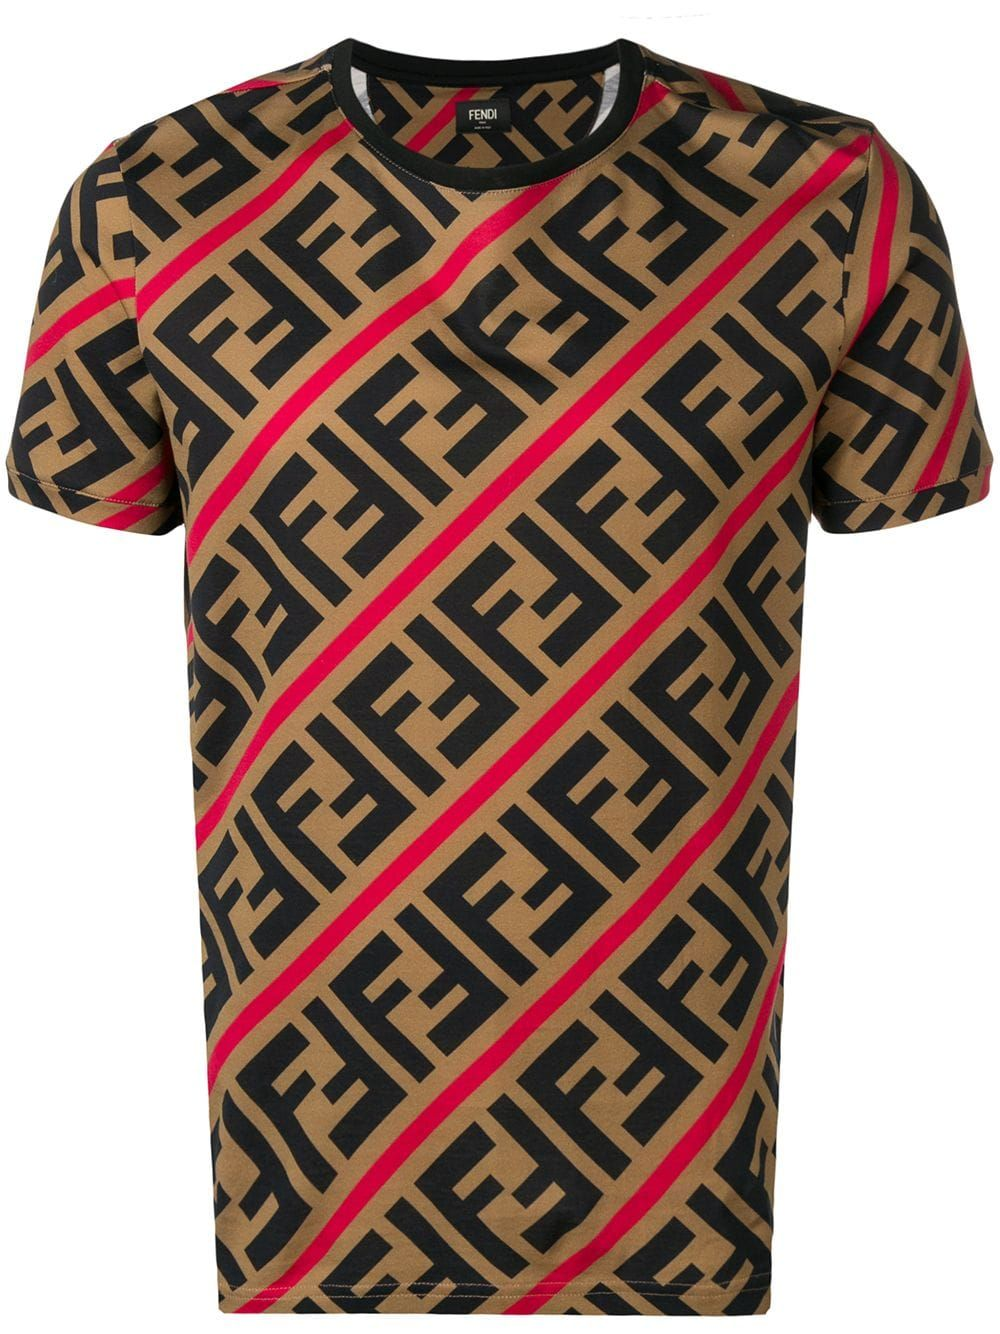 5f0d8e80 FENDI FENDI PRINTED FF LOGO T-SHIRT - BROWN. #fendi #cloth | Fendi ...